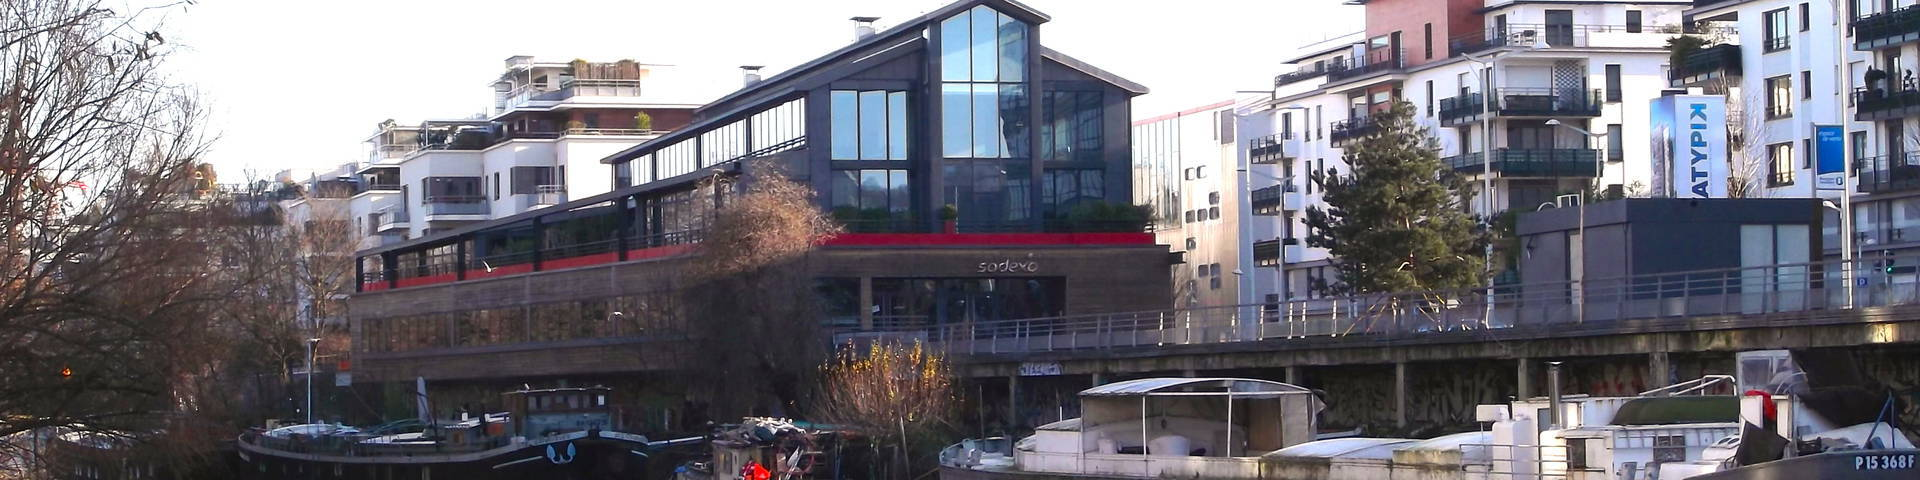 Hotels A Issy Les Moulineaux